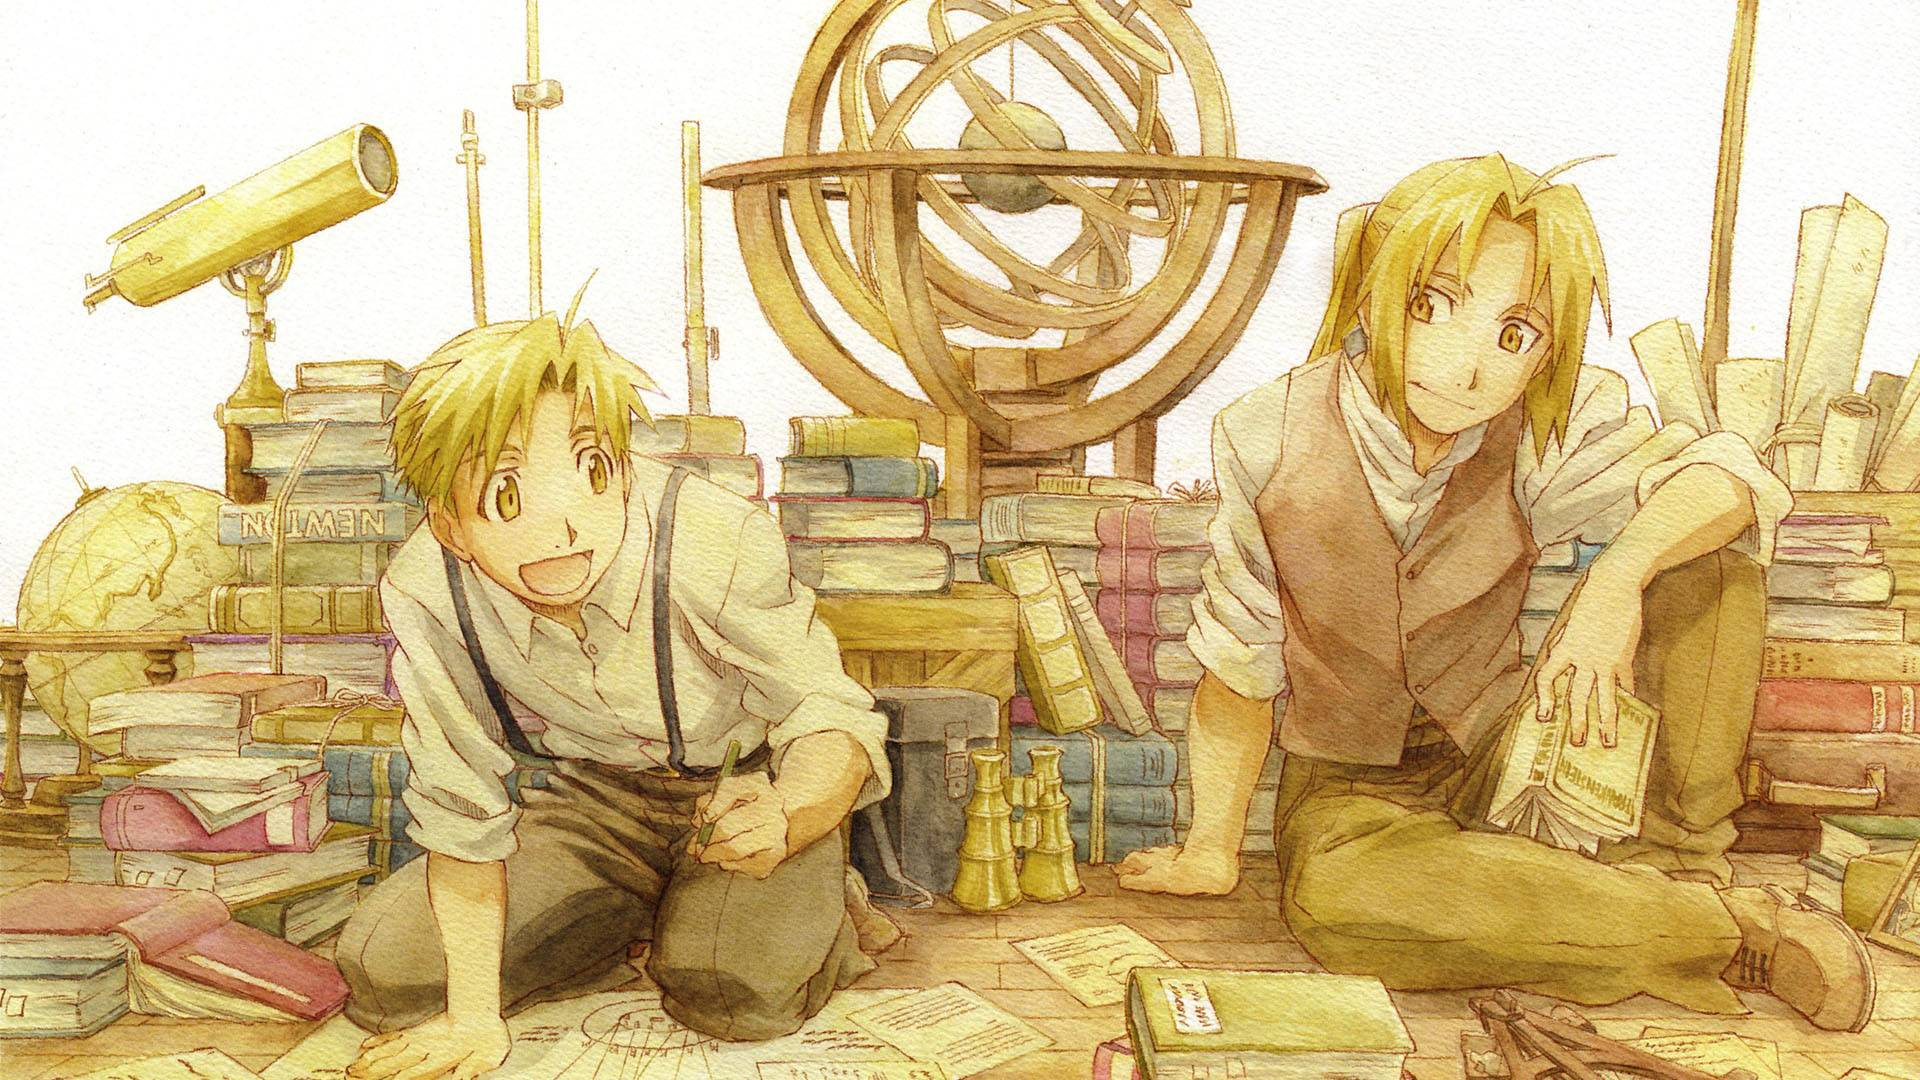 Brothers fma english lyrics